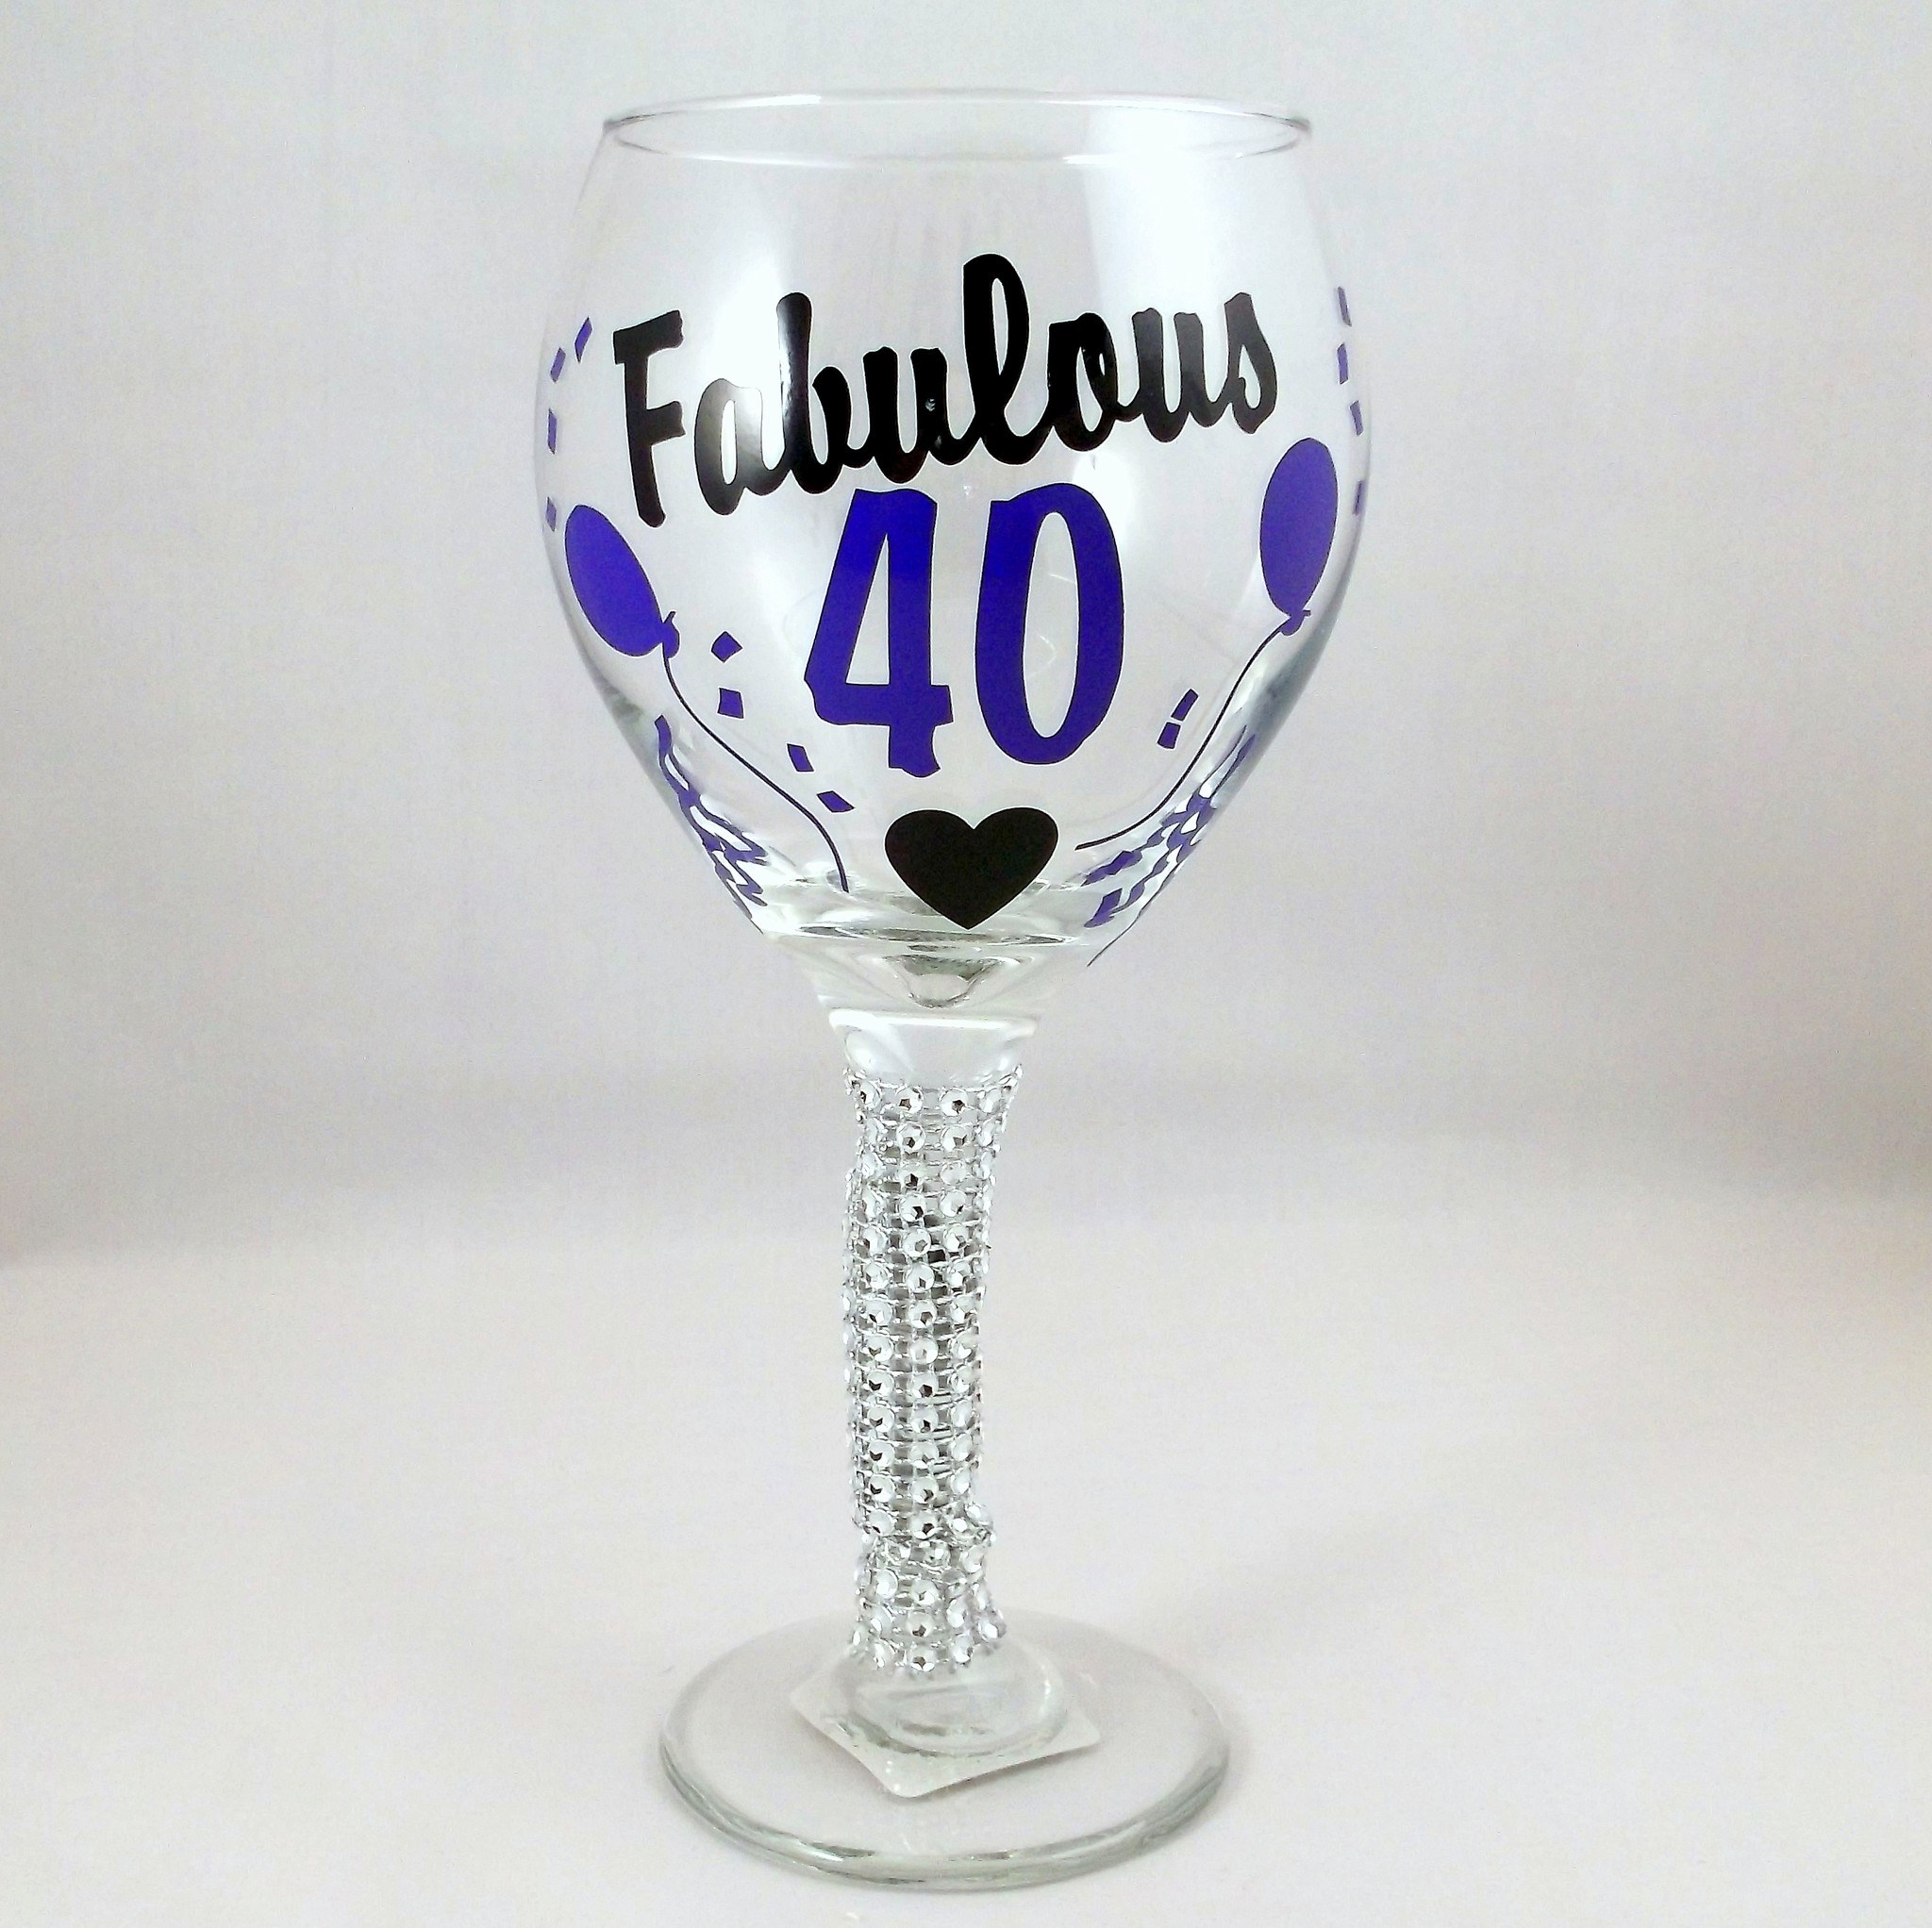 fabulous 40 birthday wine glass extra from dogwood alley